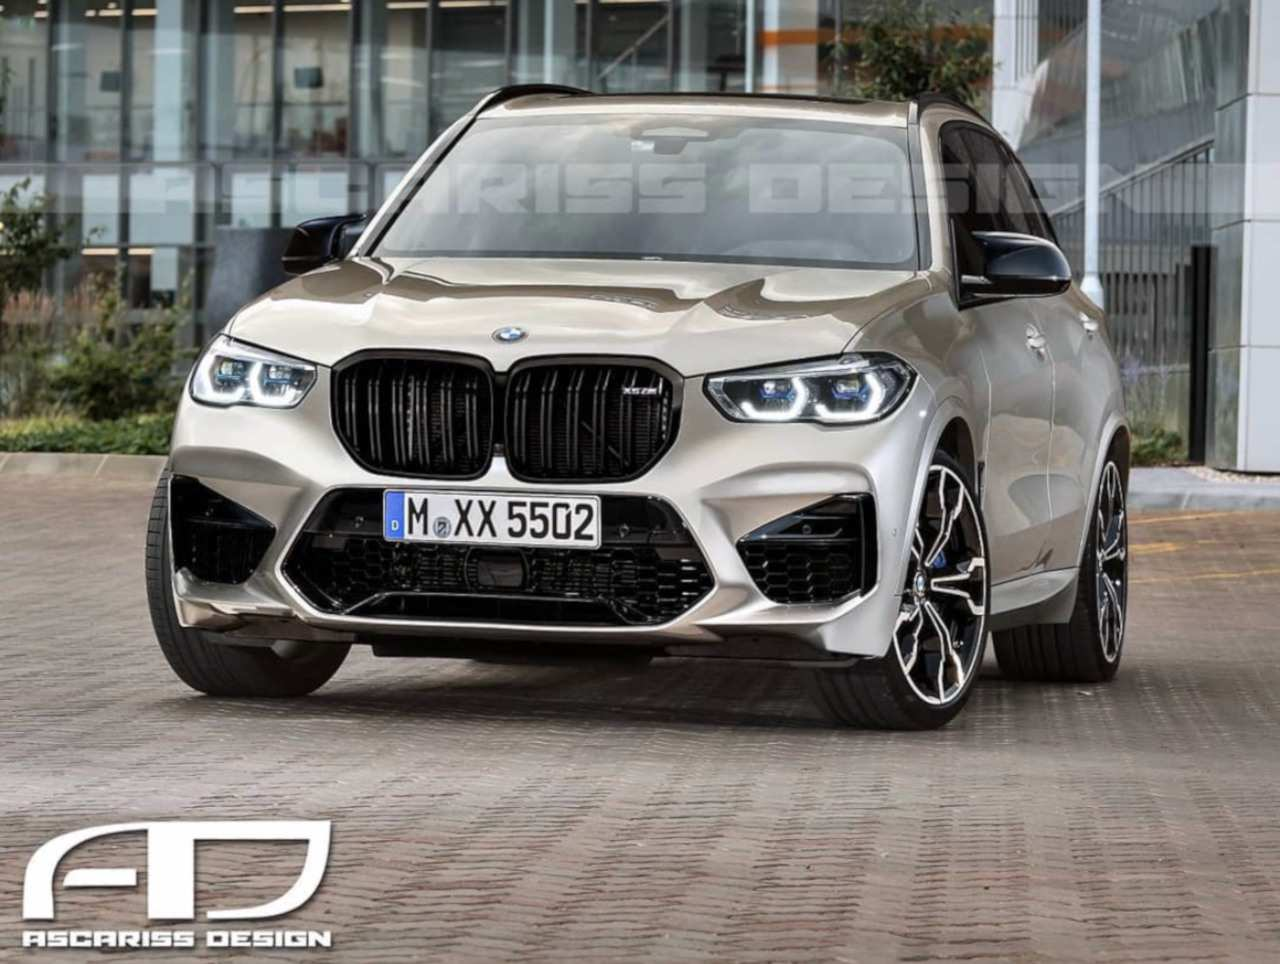 68 The 2020 Bmw X5M Reviews for 2020 Bmw X5M